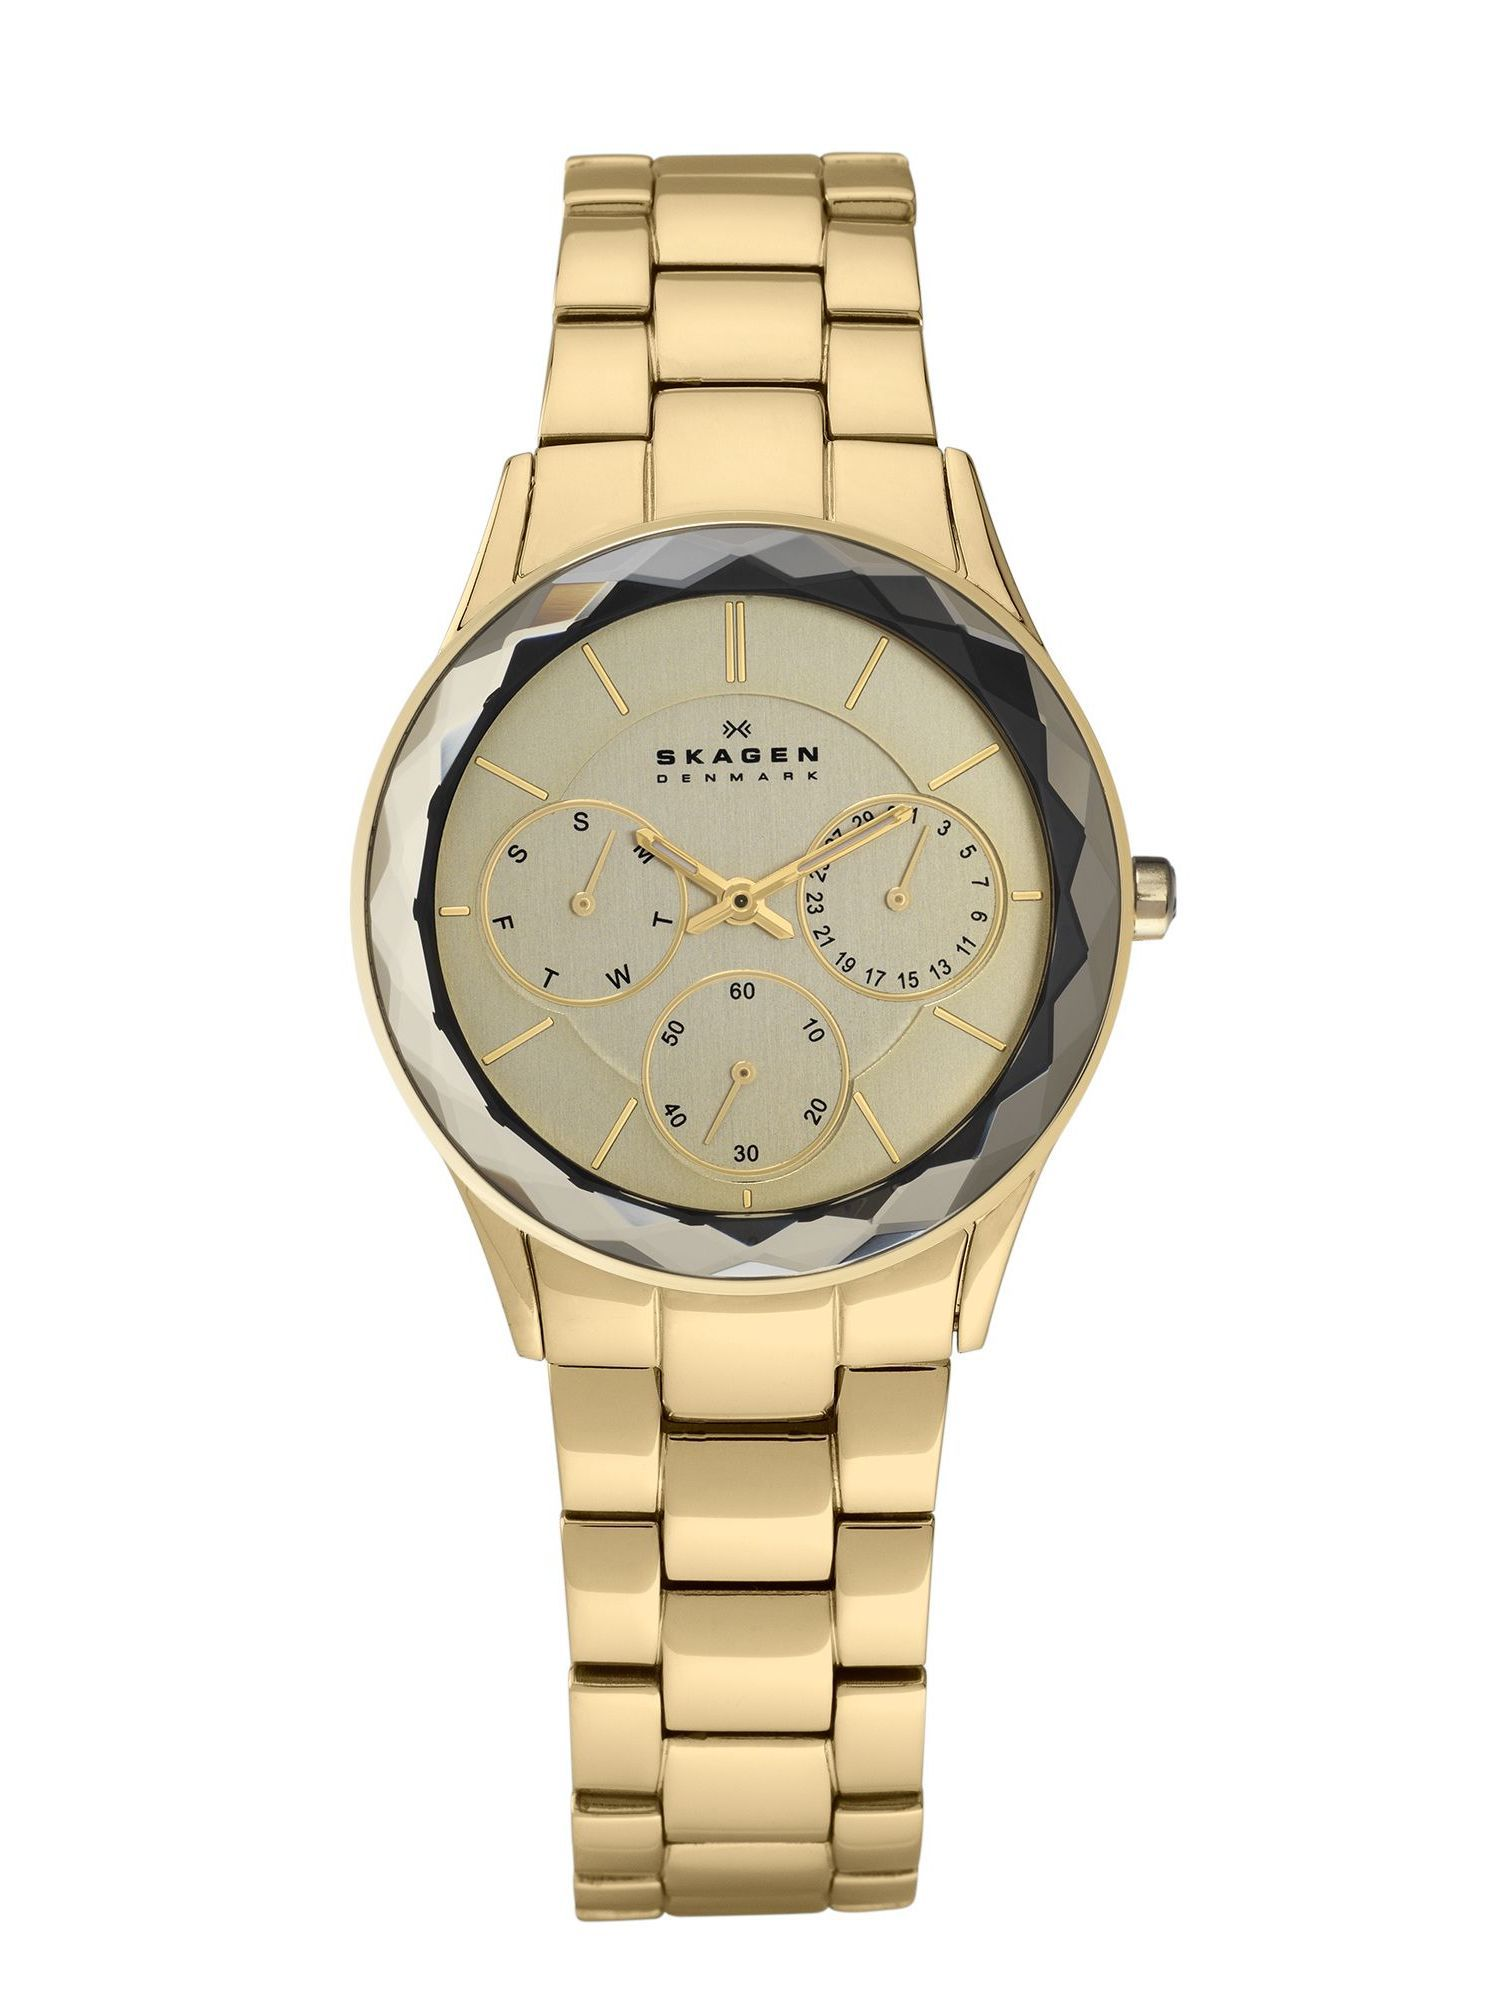 344LGXG Skagen Steel Gold Link Ladies Watch